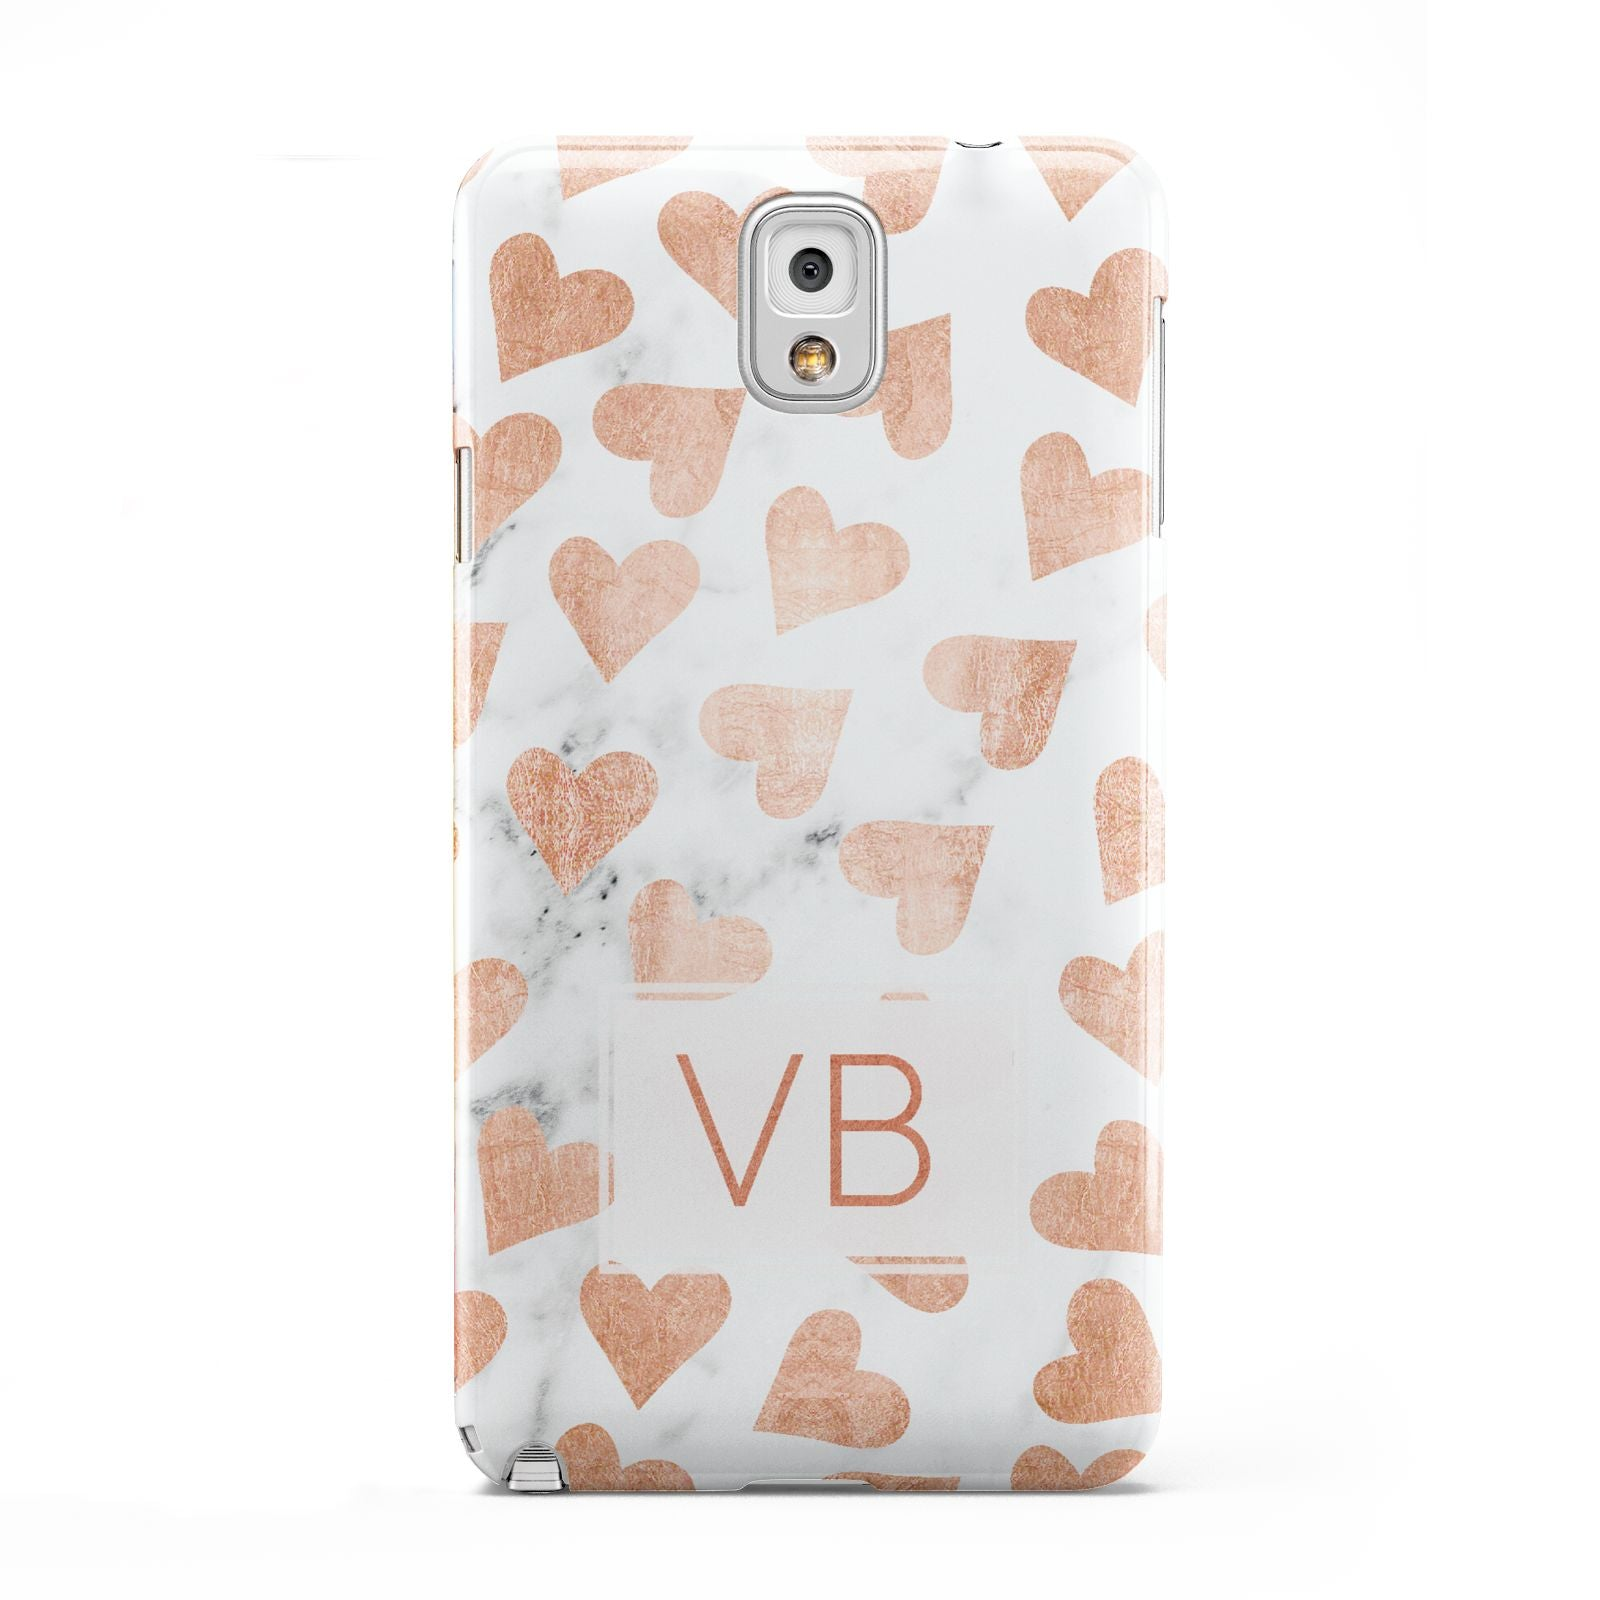 Personalised Heart Initialled Marble Samsung Galaxy Note 3 Case